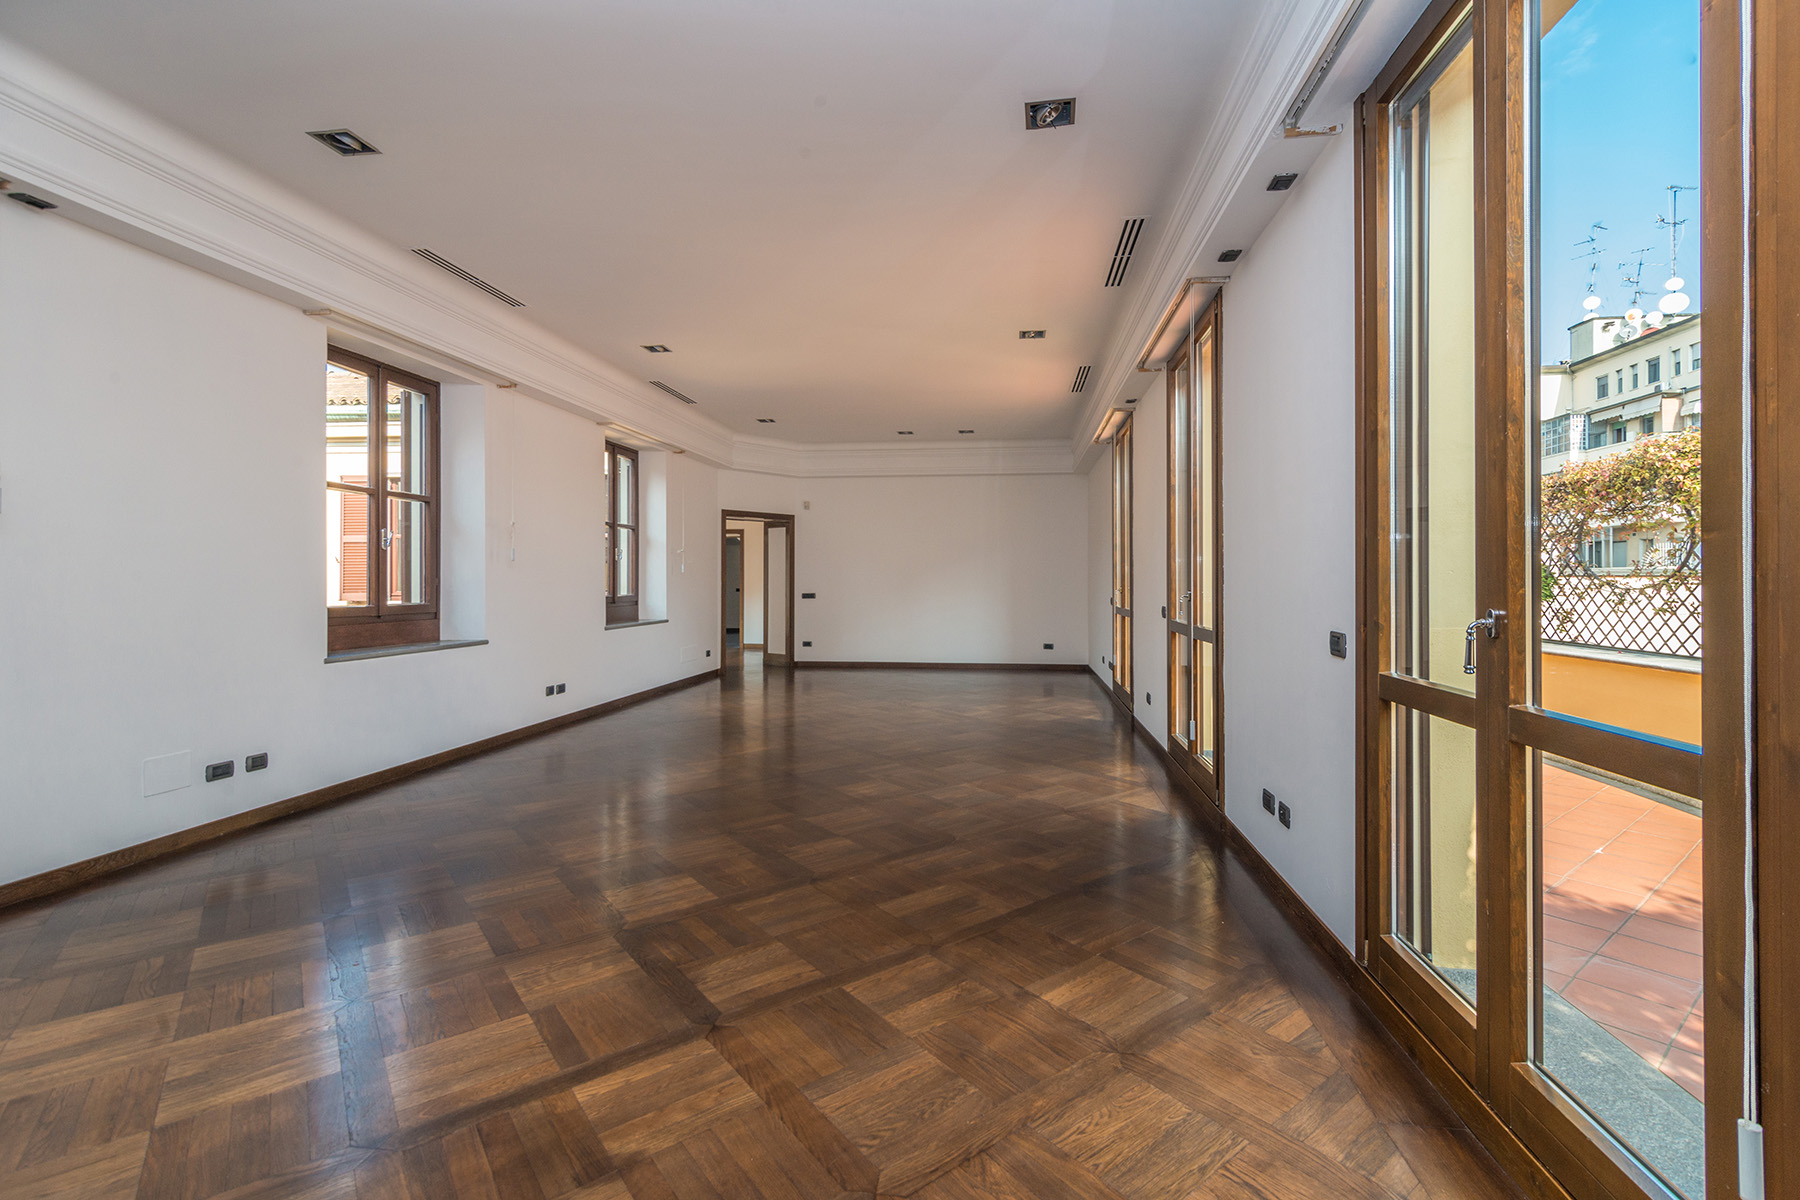 Additional photo for property listing at Exclusive penthouse in the heart of Milan via della Spiga Milano, Milan 20121 Italia